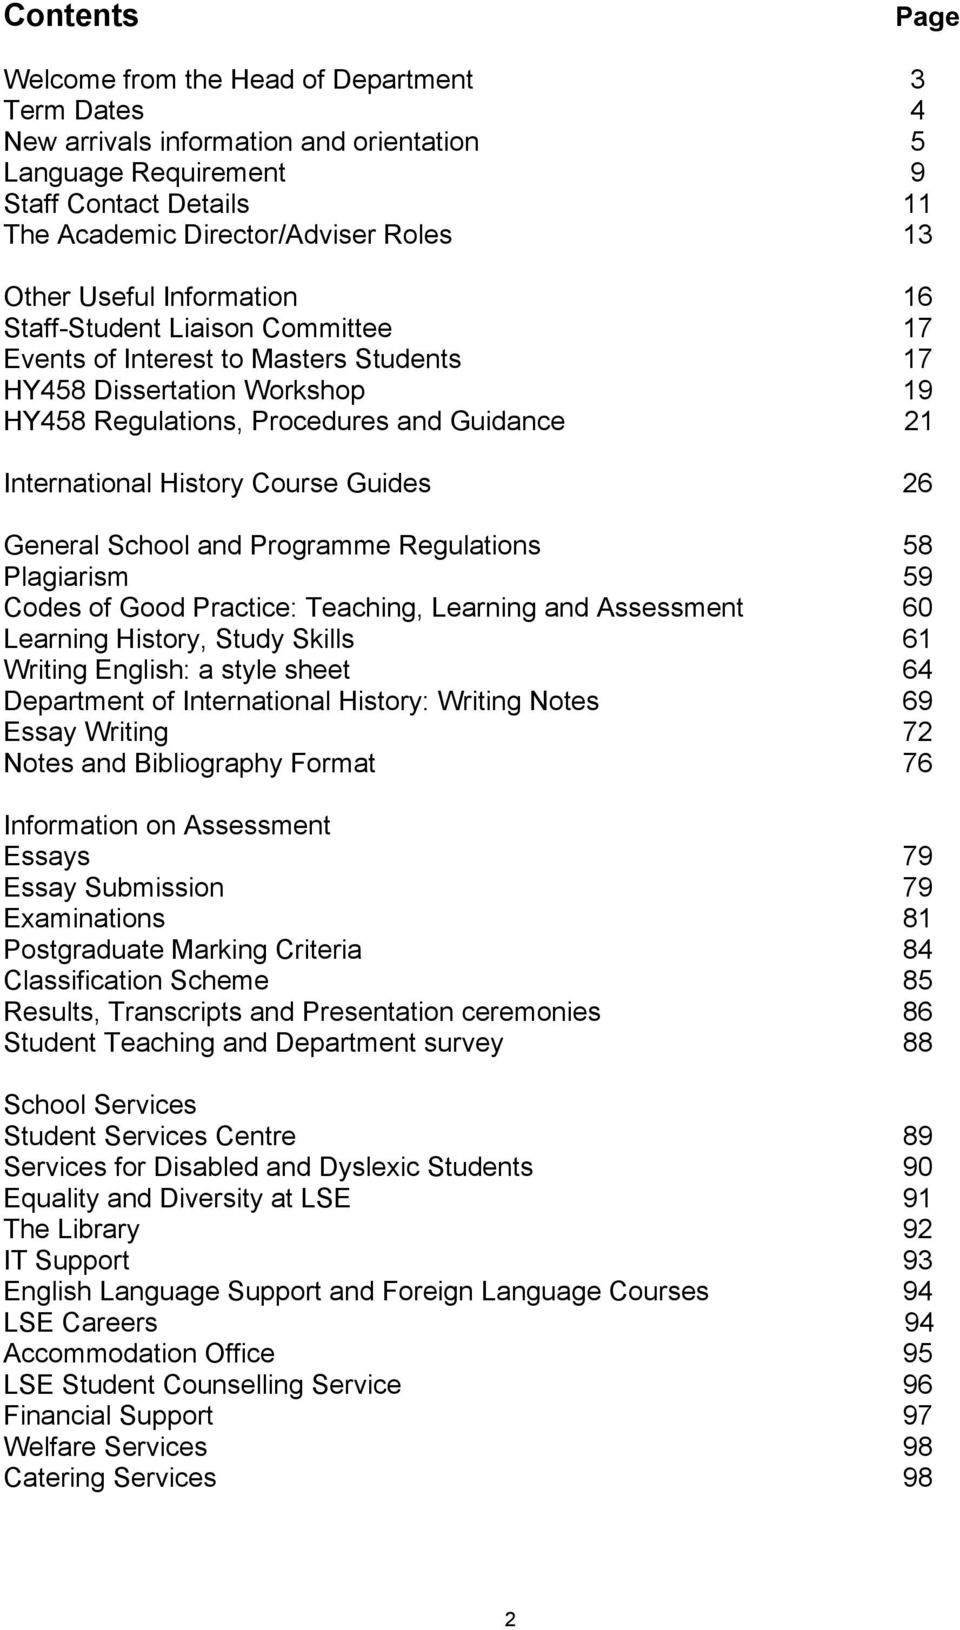 History Course Guides 26 General School and Programme Regulations 58 Plagiarism 59 Codes of Good Practice: Teaching, Learning and Assessment 60 Learning History, Study Skills 61 Writing English: a